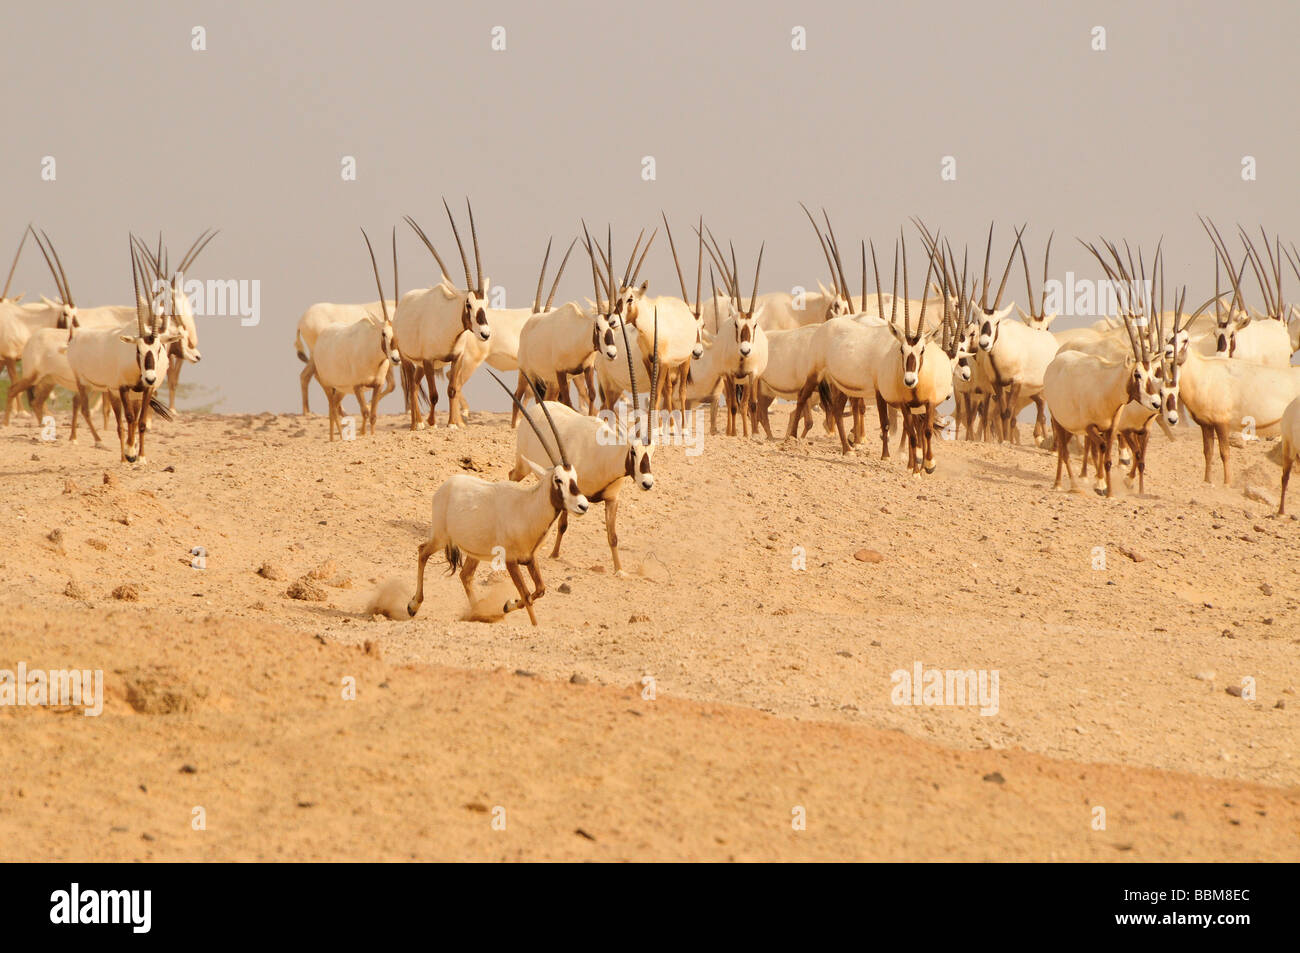 Arabian Oryx (Arabian Oryx), Sir Bani Yas Island, Abu Dhabi, United Arab Emirates, Arabia, Near East, Orient - Stock Image